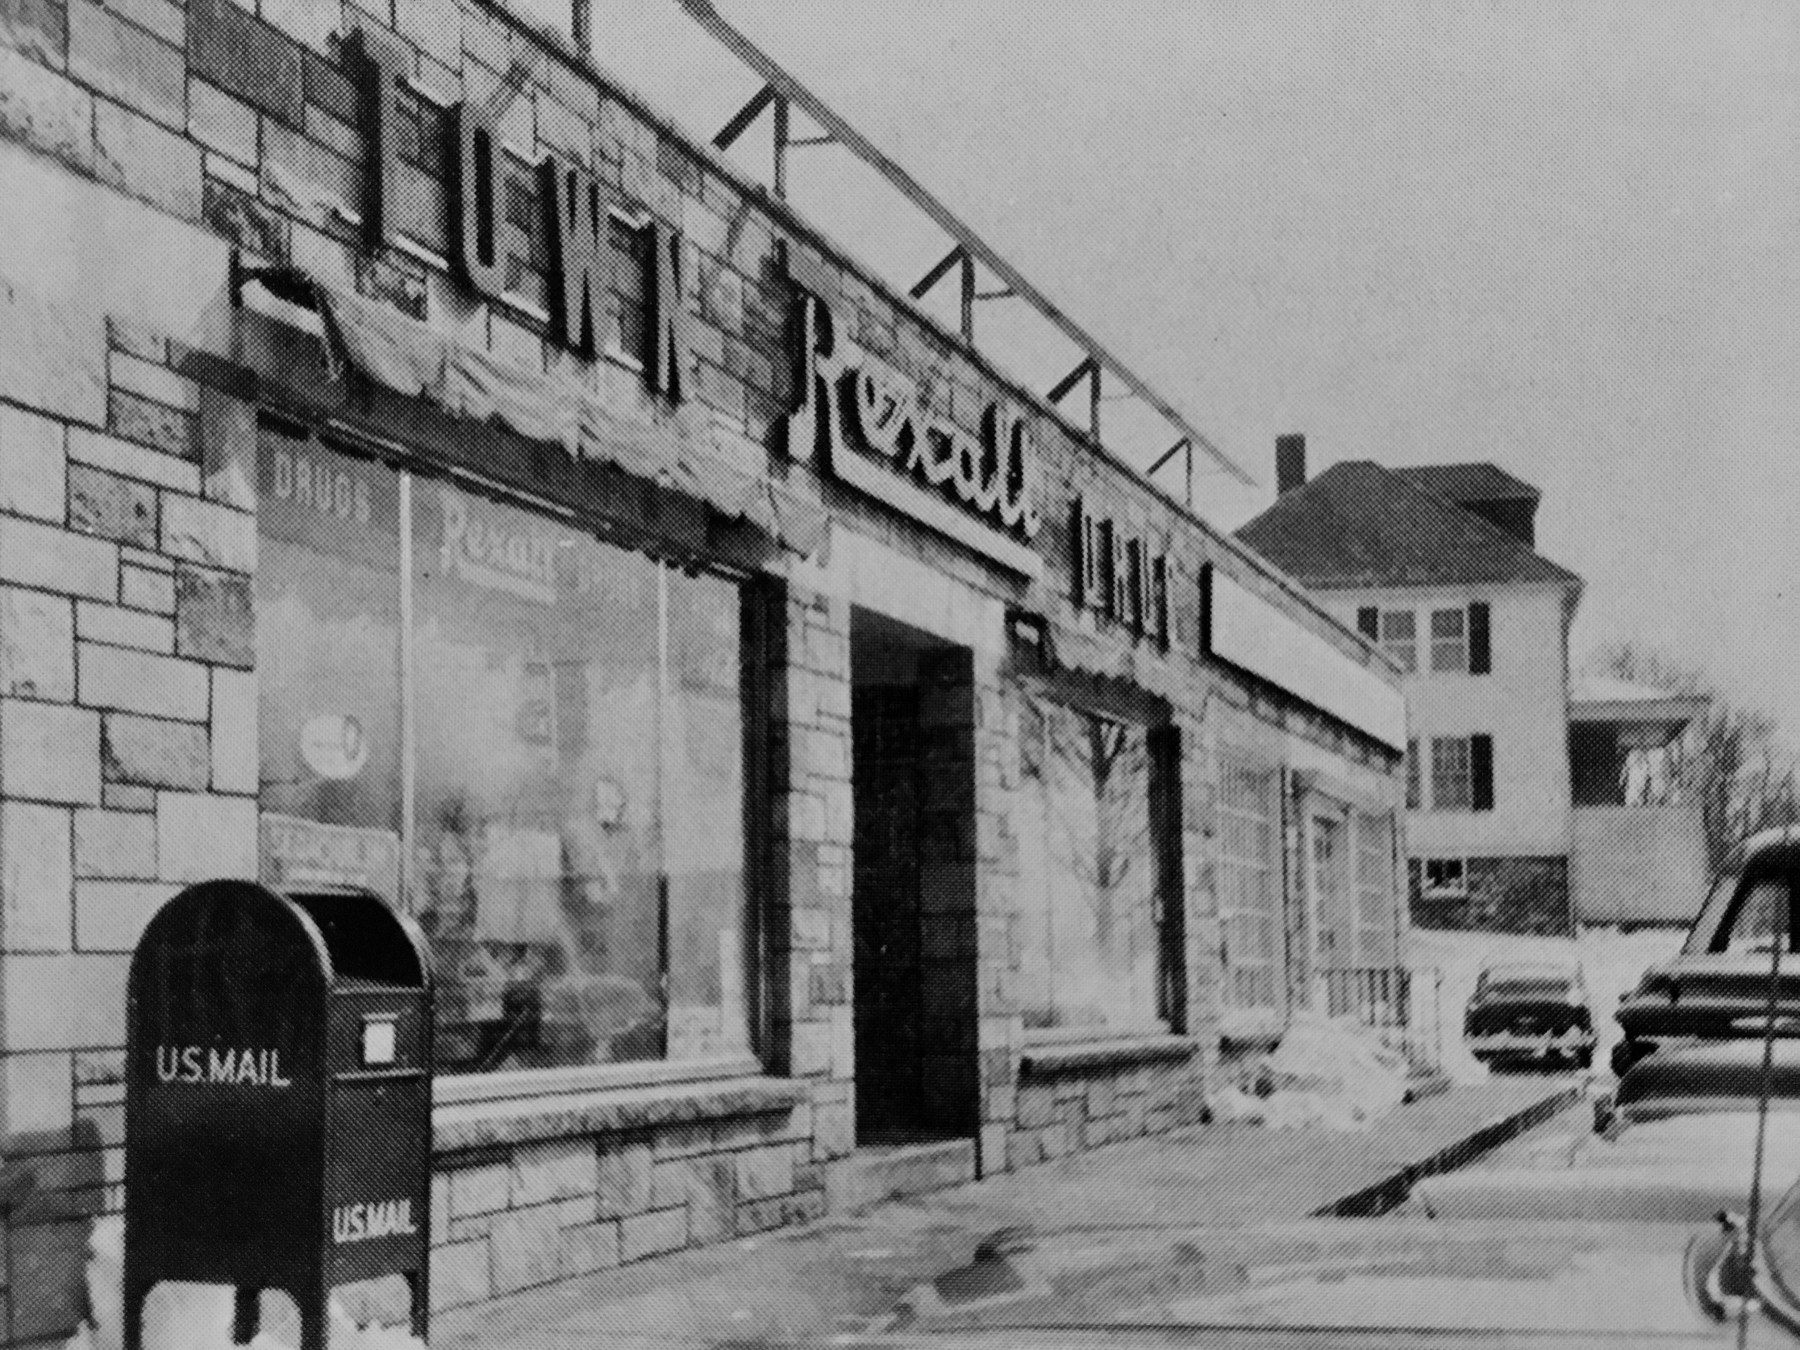 Rexall Burlington MA, with Charles Dearborn's house in the background.